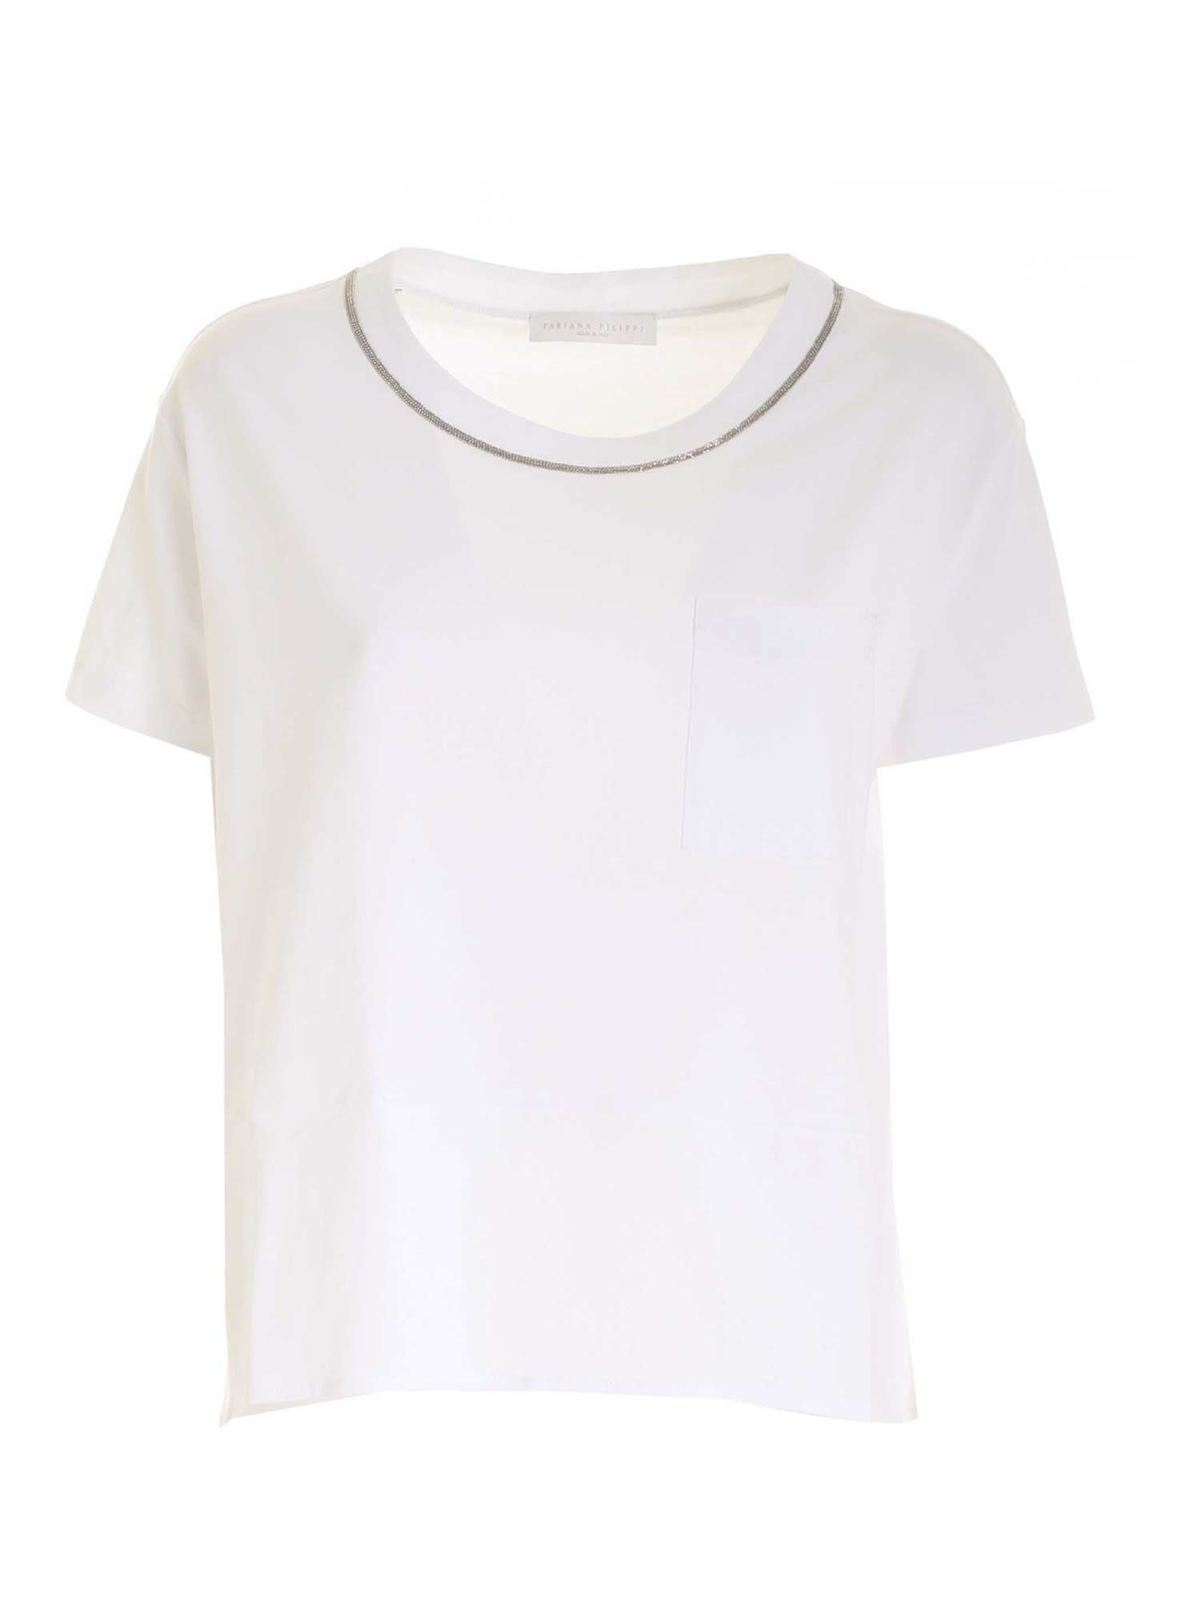 Fabiana Filippi MICRO BEADS T-SHIRT IN WHITE